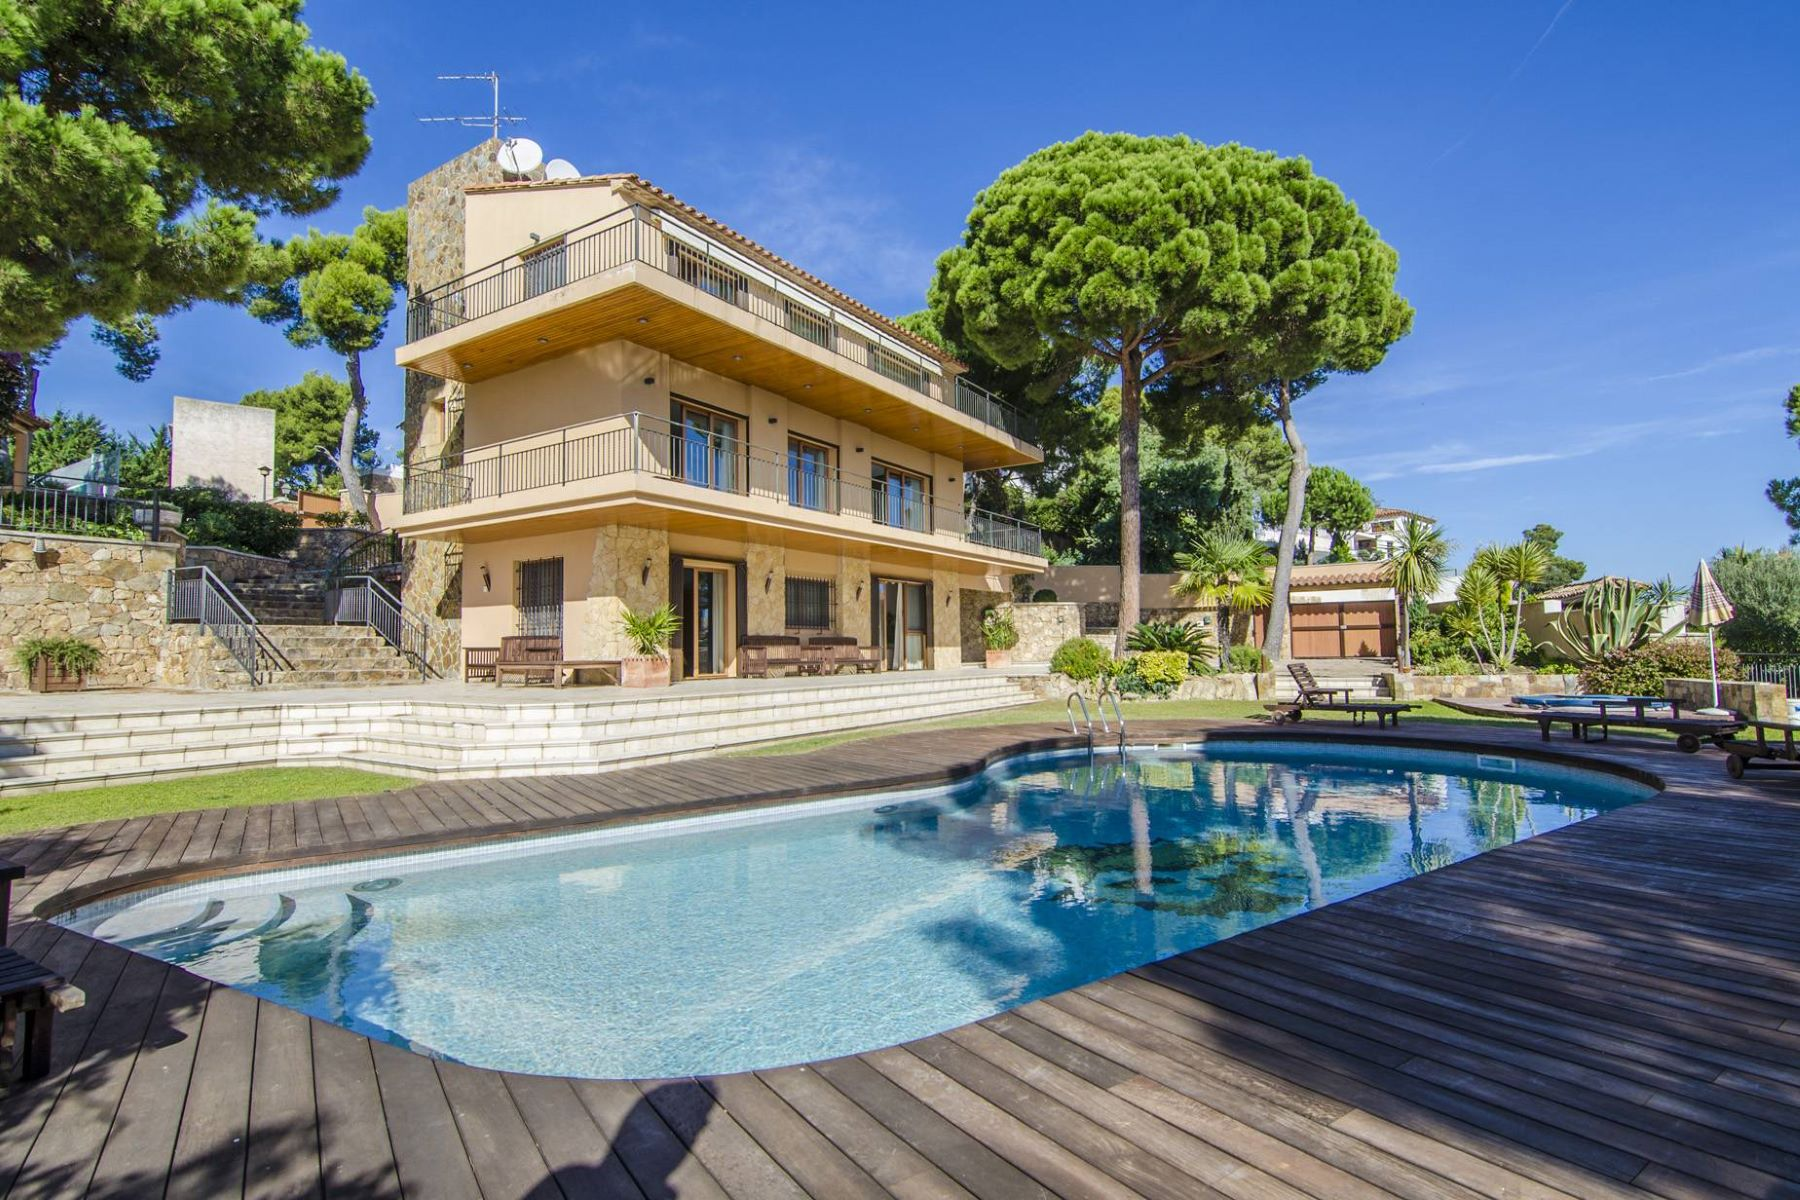 Single Family Home for Sale at Beautiful villa with magnificent sea views in prestigious urbanization Torrevalentina, Barcelona 17252 Spain